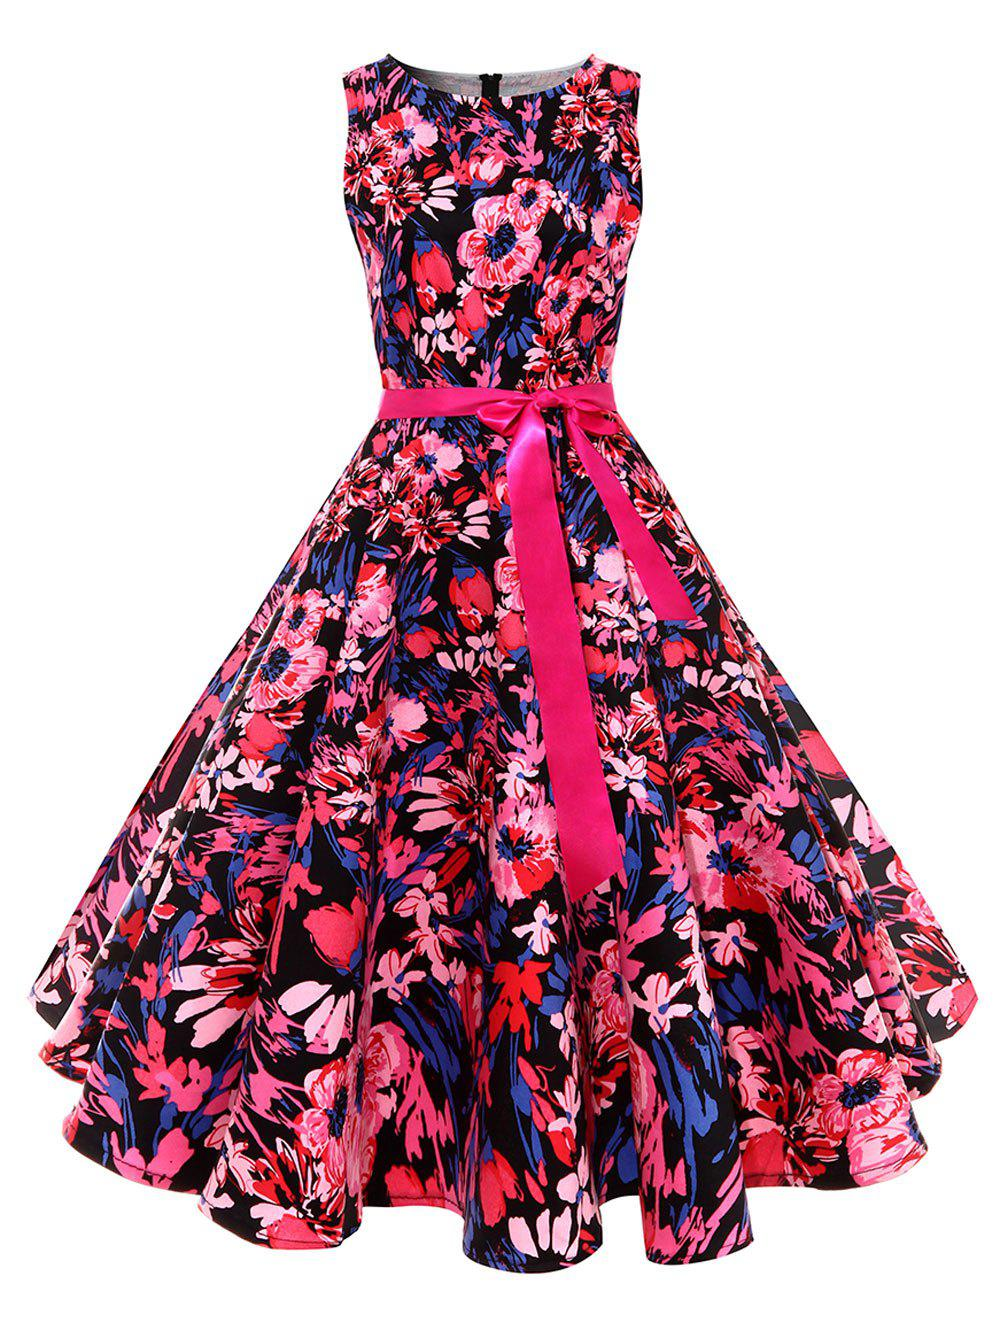 Vintage Floral Print Skater Pin Up DressWOMEN<br><br>Size: 2XL; Color: RED; Style: Vintage; Material: Polyester,Spandex; Silhouette: A-Line; Dress Type: Fit and Flare Dress,Swing Dress; Dresses Length: Knee-Length; Neckline: Round Collar; Sleeve Length: Sleeveless; Pattern Type: Floral; With Belt: Yes; Season: Fall,Spring; Weight: 0.4000kg; Package Contents: 1 x Dress  1 x Belt;